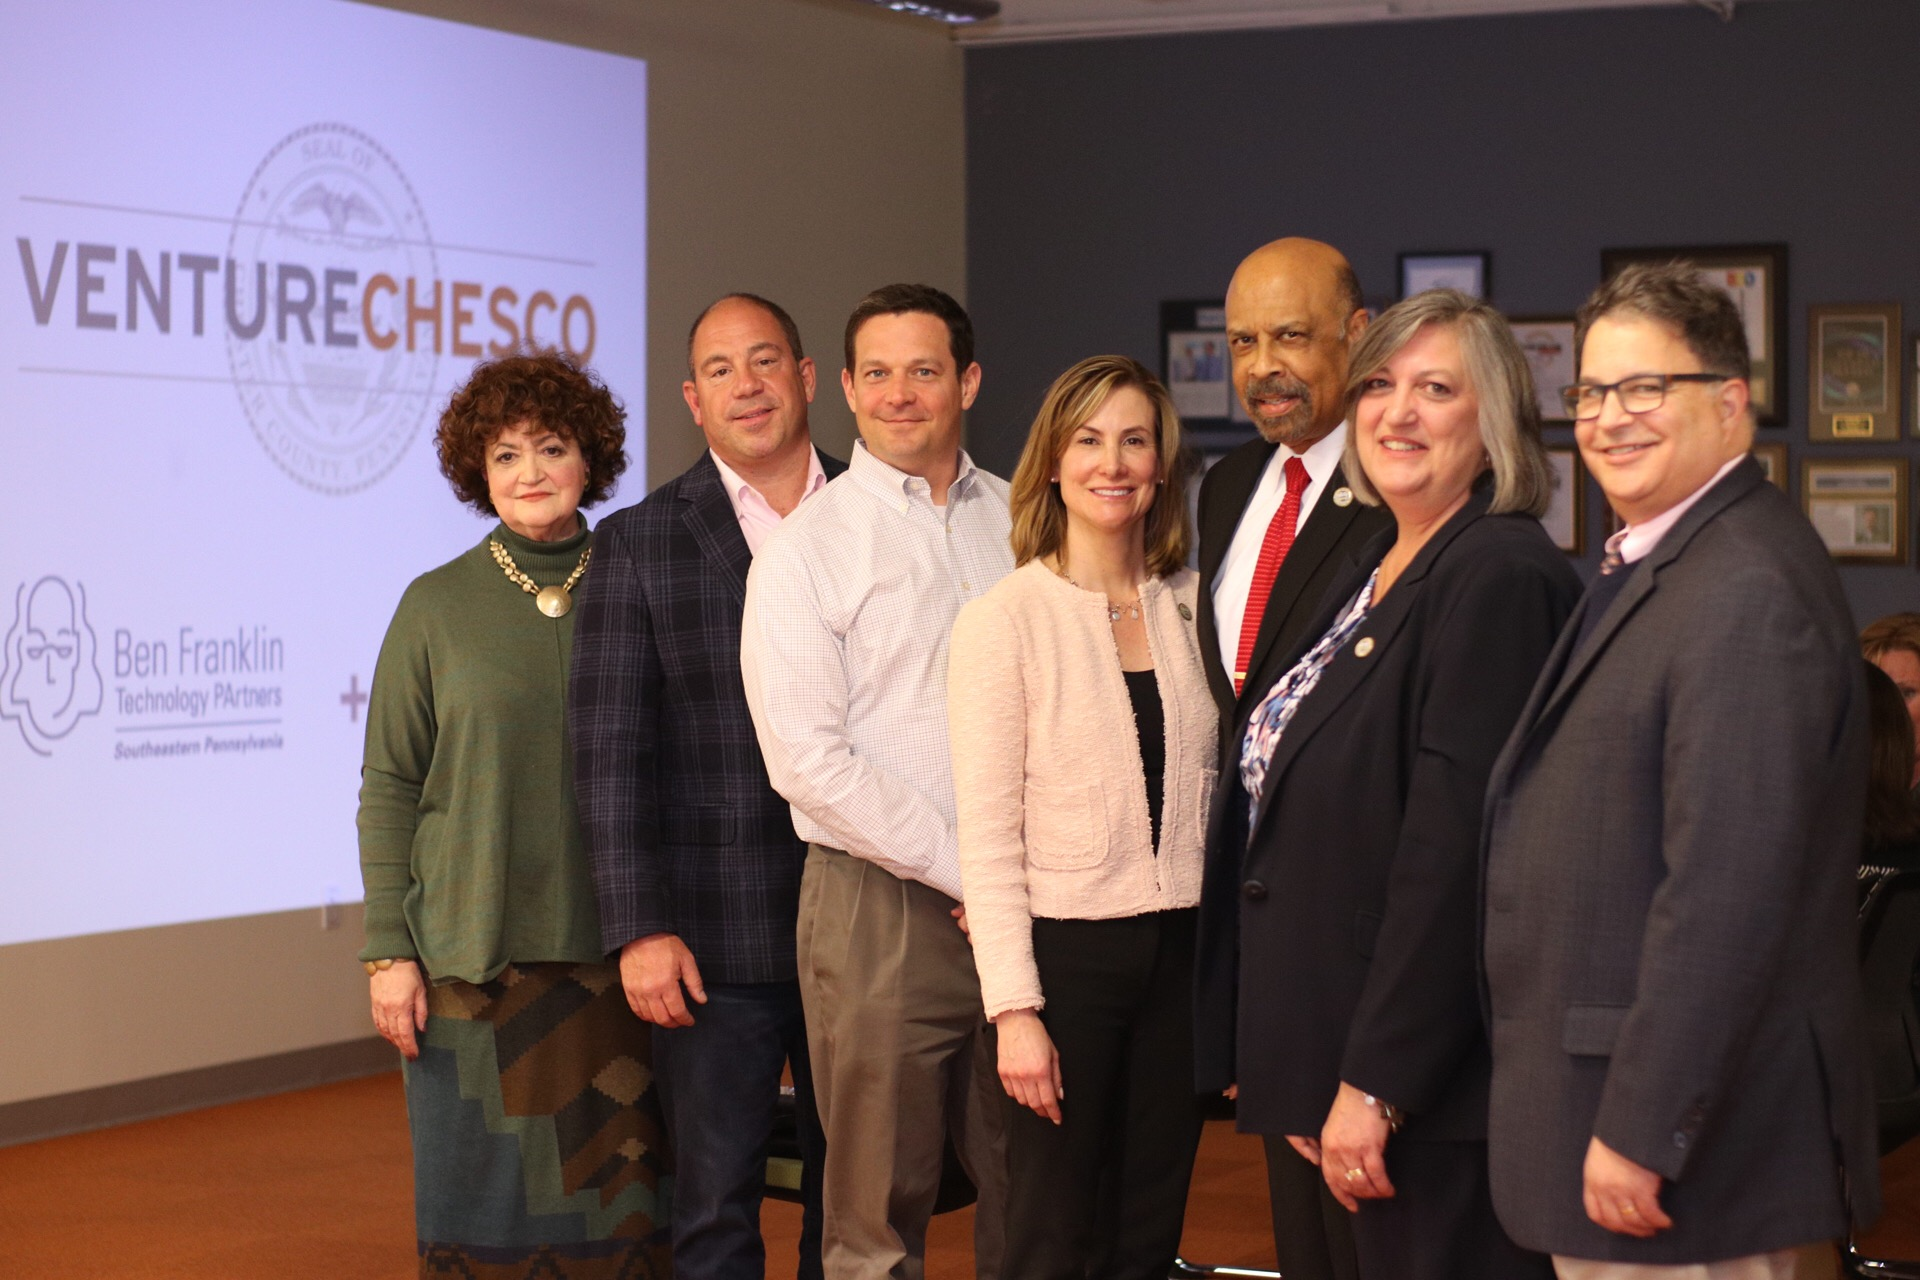 County's 'Venture Chesco' Launches Fund to Encourage Development of Start-Ups